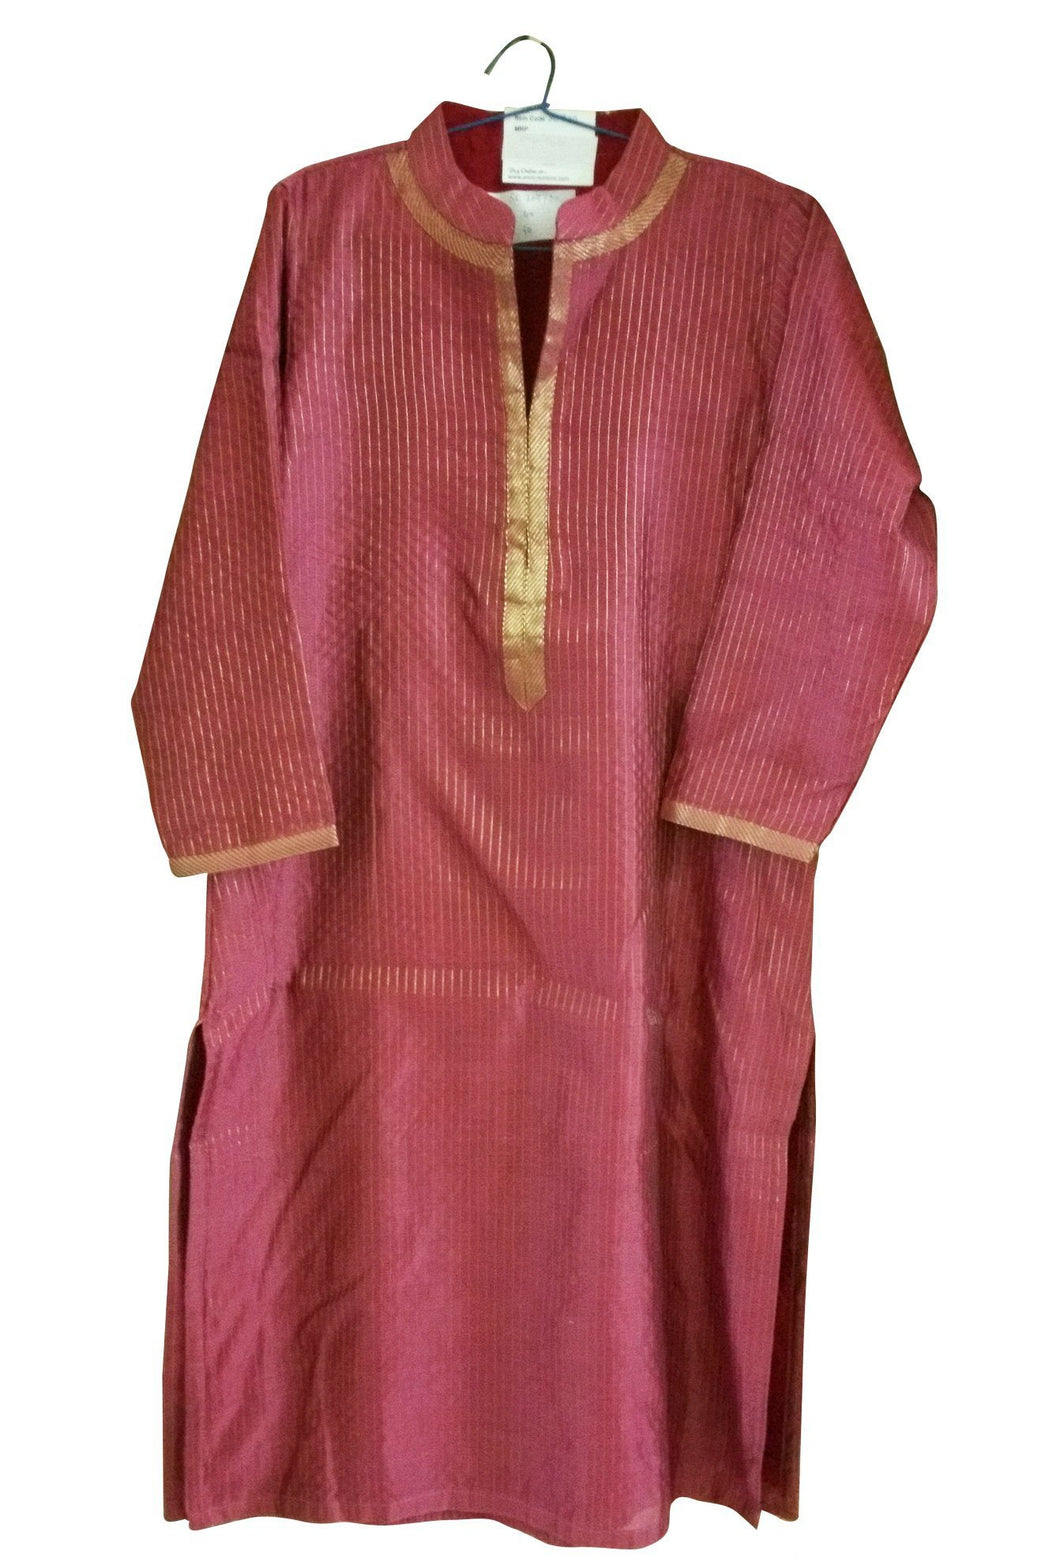 Pink Cotton Silk Stitched Kurta Kurti Top Dress Size 40 SC730 - Ethnic's By Anvi Creations